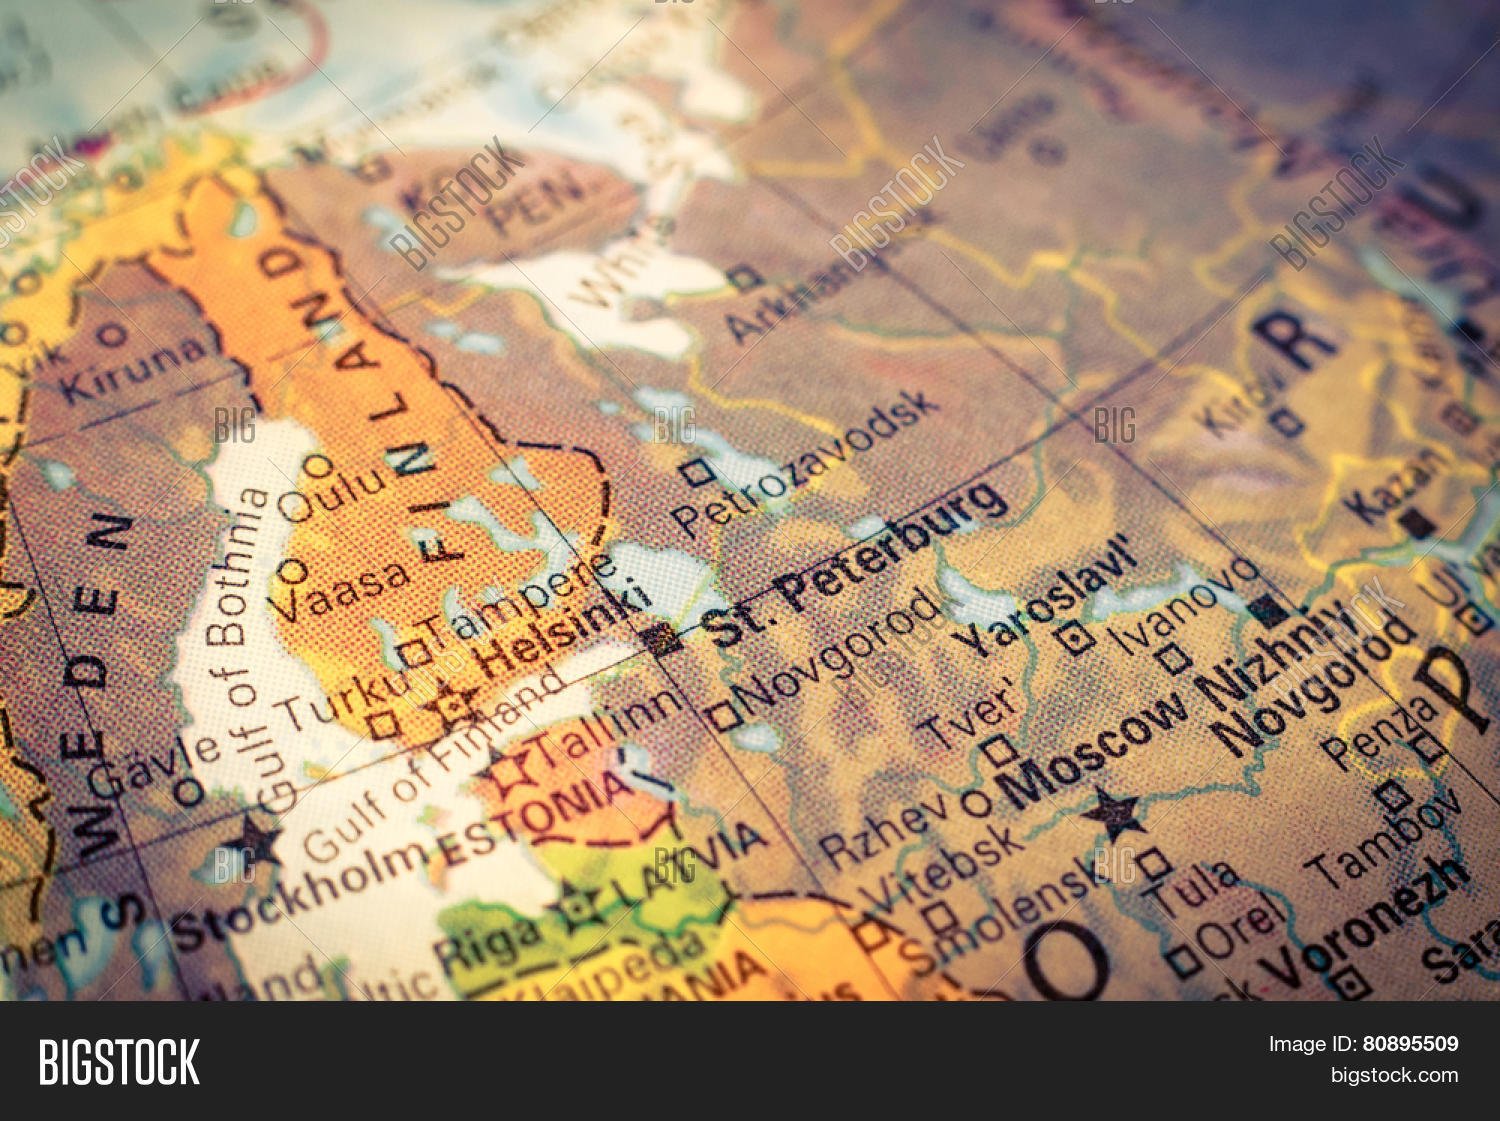 Map russia finland image photo free trial bigstock map russia and finland close up macro image of russian map selective focus gumiabroncs Choice Image